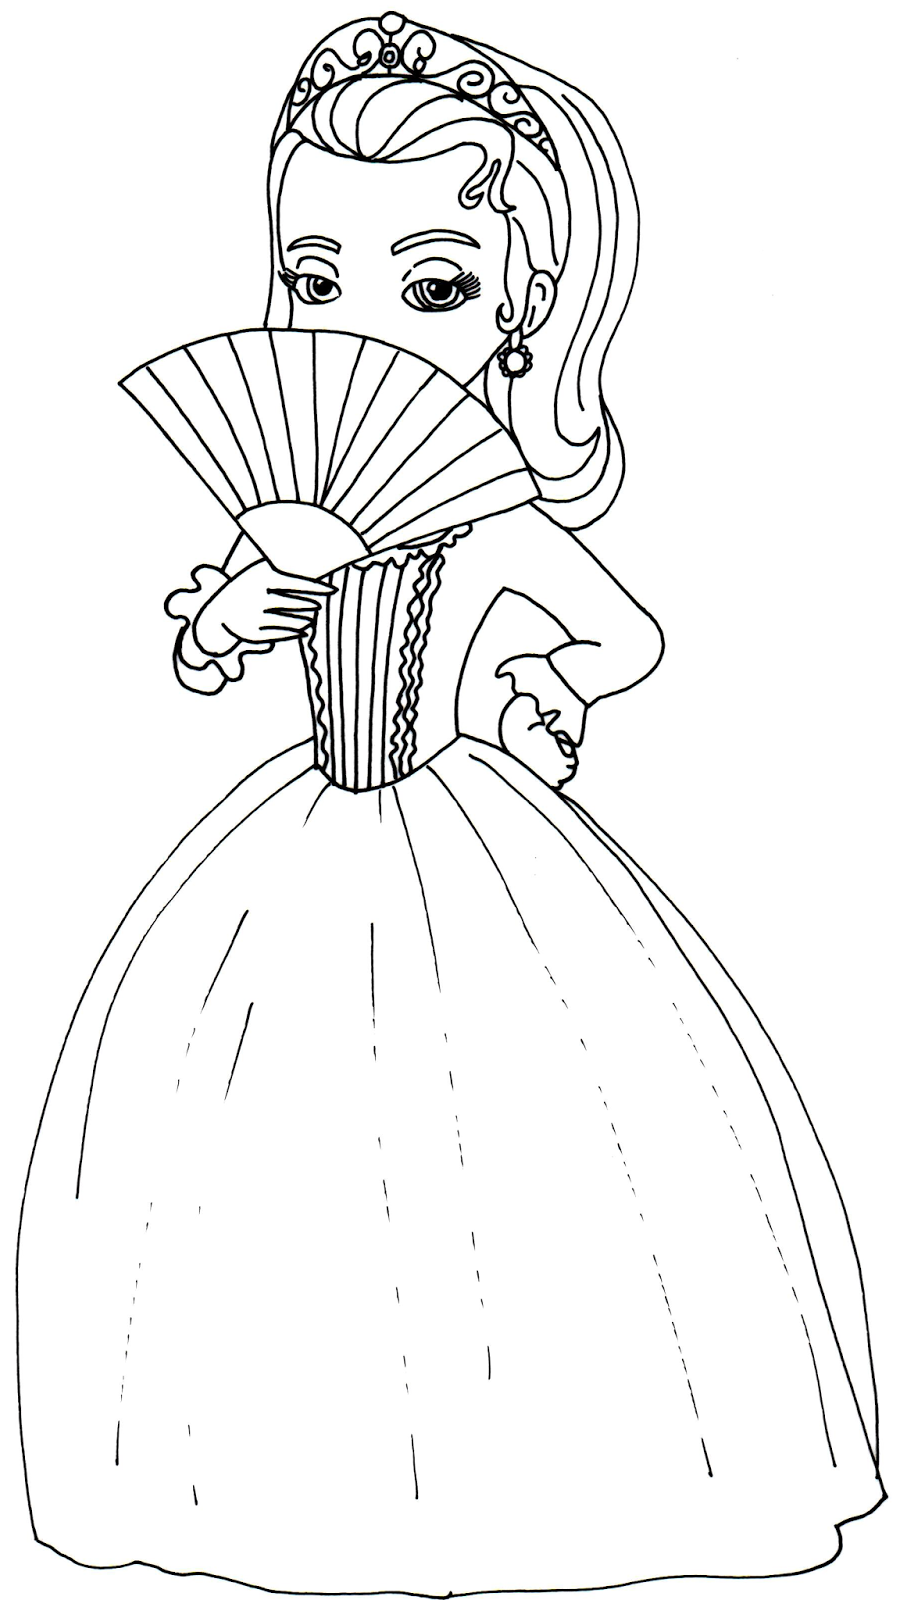 Sofia The First Coloring Pages: Princess Amber Sofia the